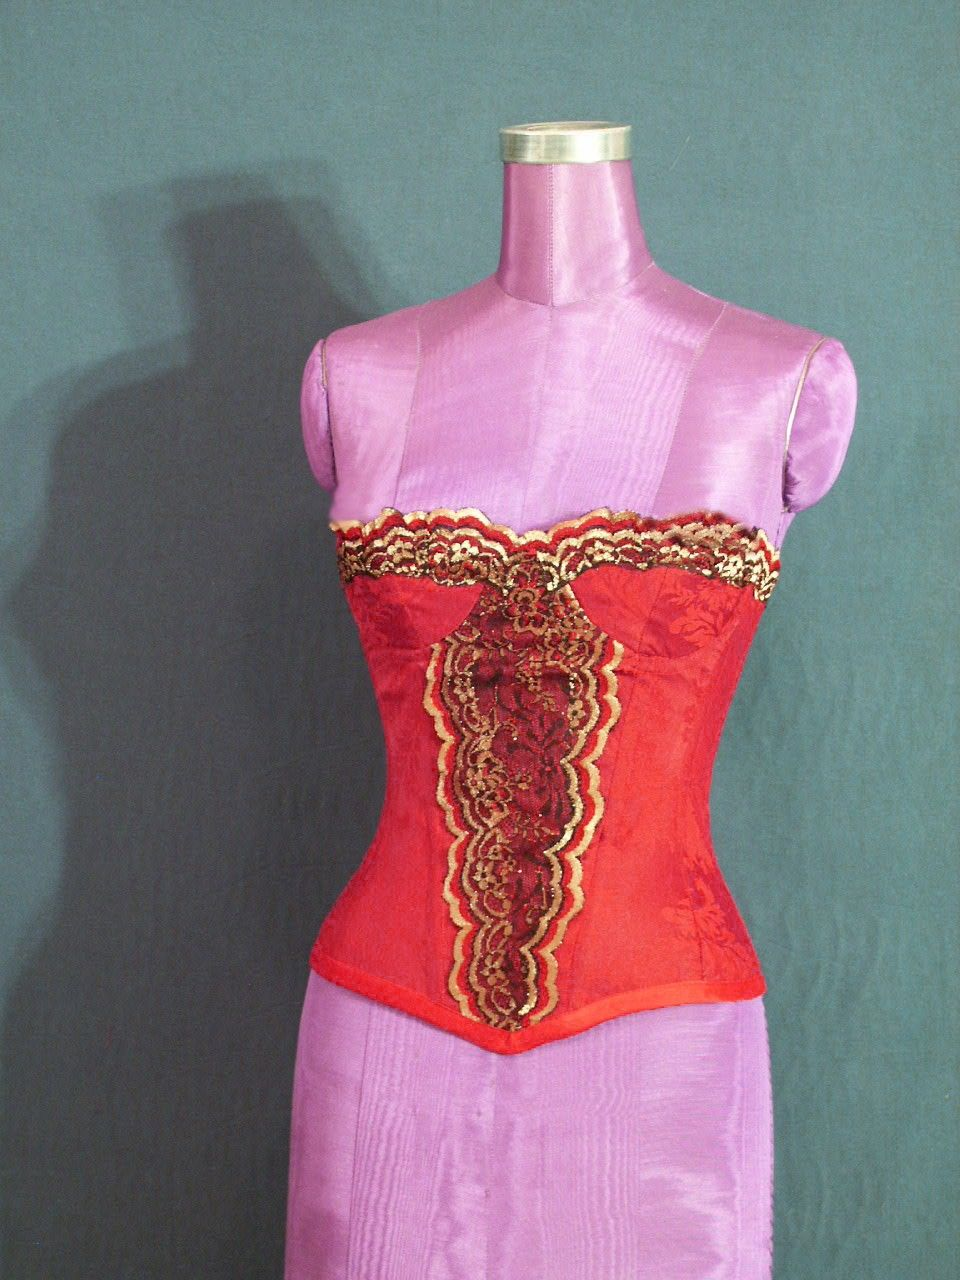 Mid-Century corset in red brocade with gold/black lace trim.  Pretty! The cups are demi so you'll get a lovely decolletage.  www.deannadesigns.biz